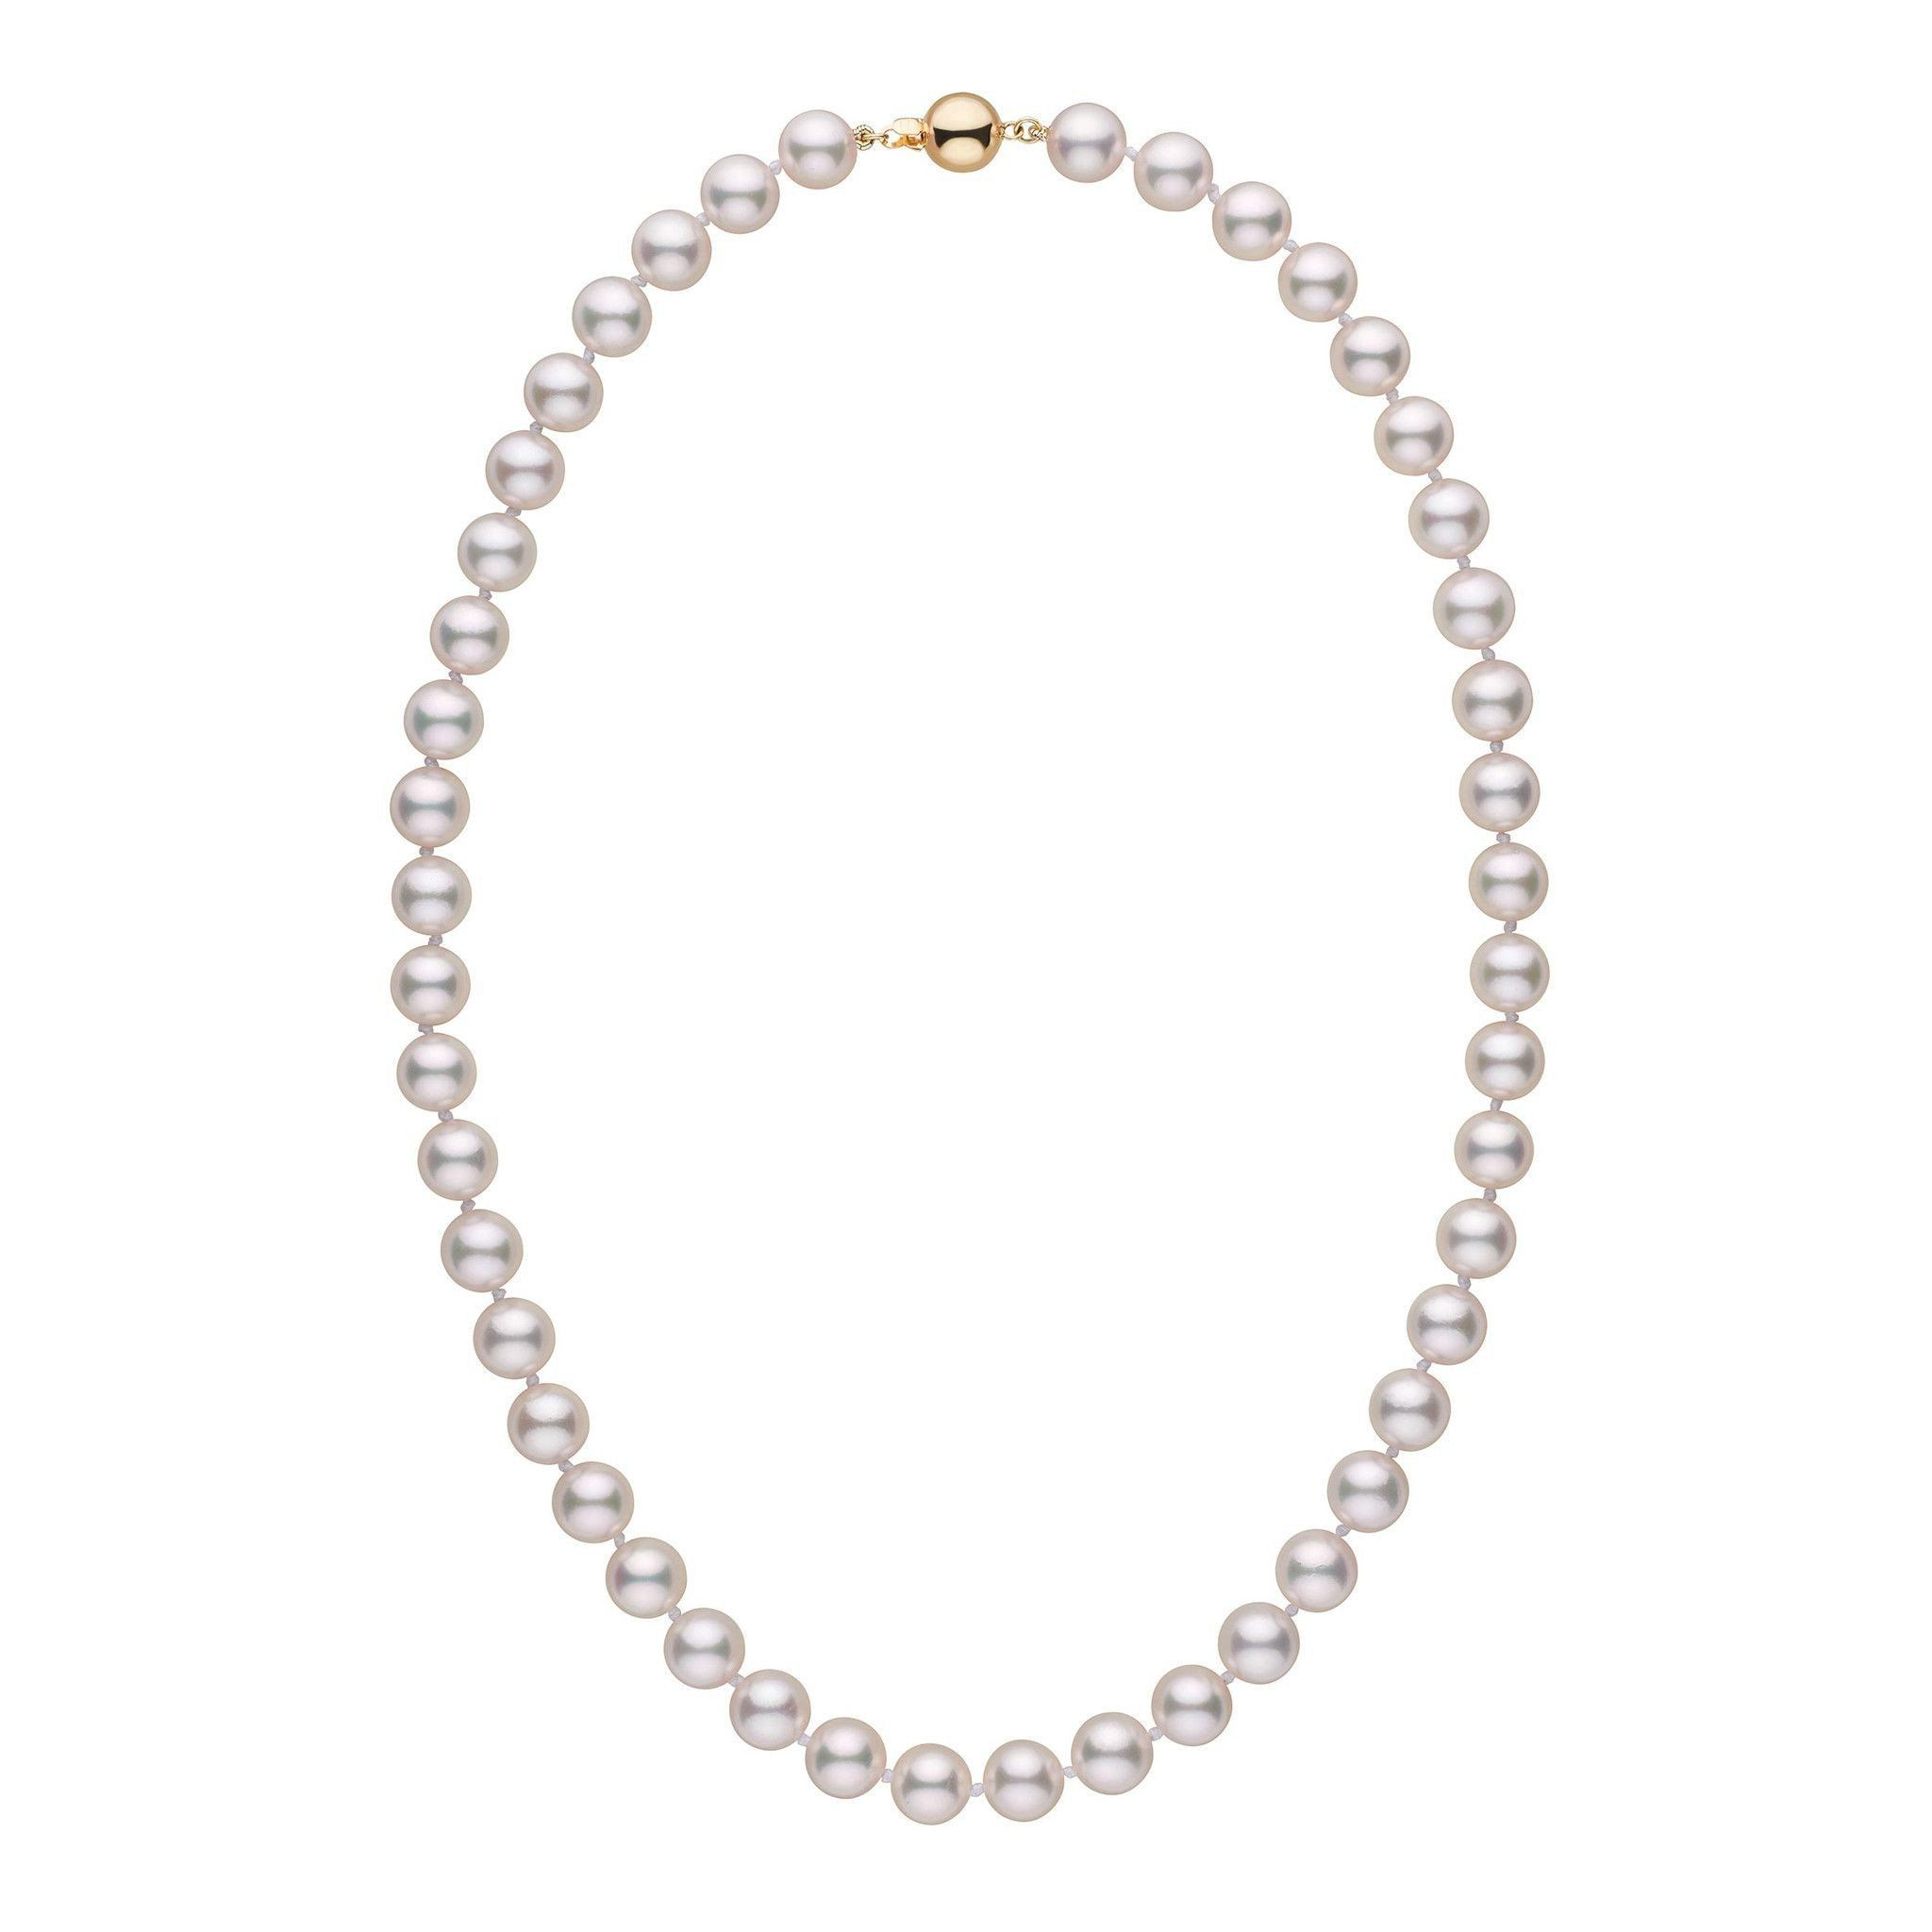 8.5-9.0 mm 18 Inch AA+ White Akoya Pearl Necklace